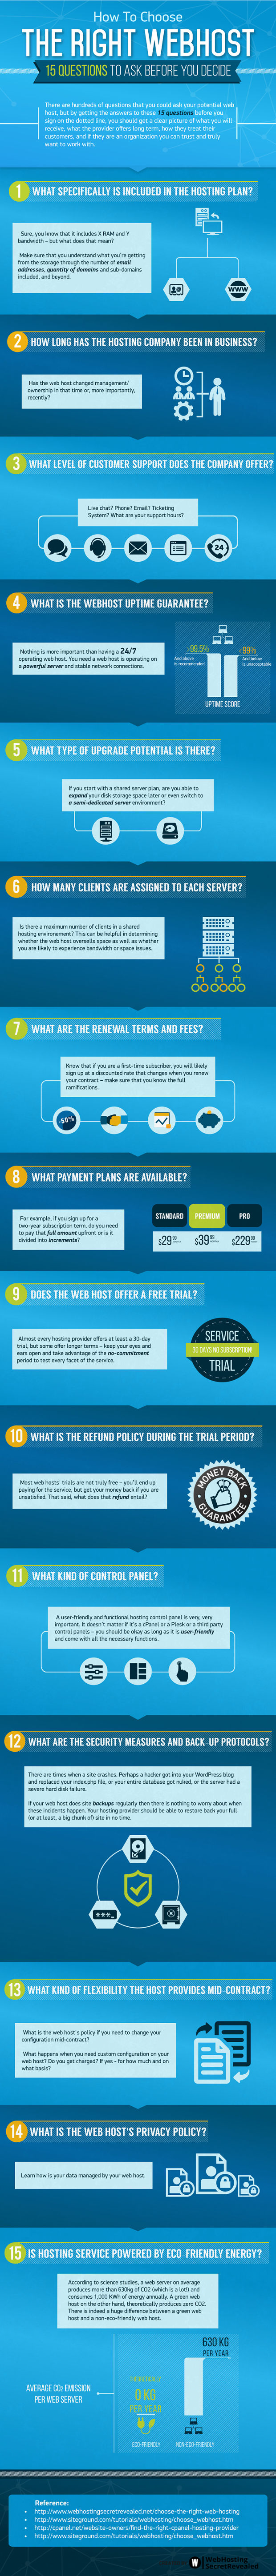 How to choose the right webhost - infographic by WHSR